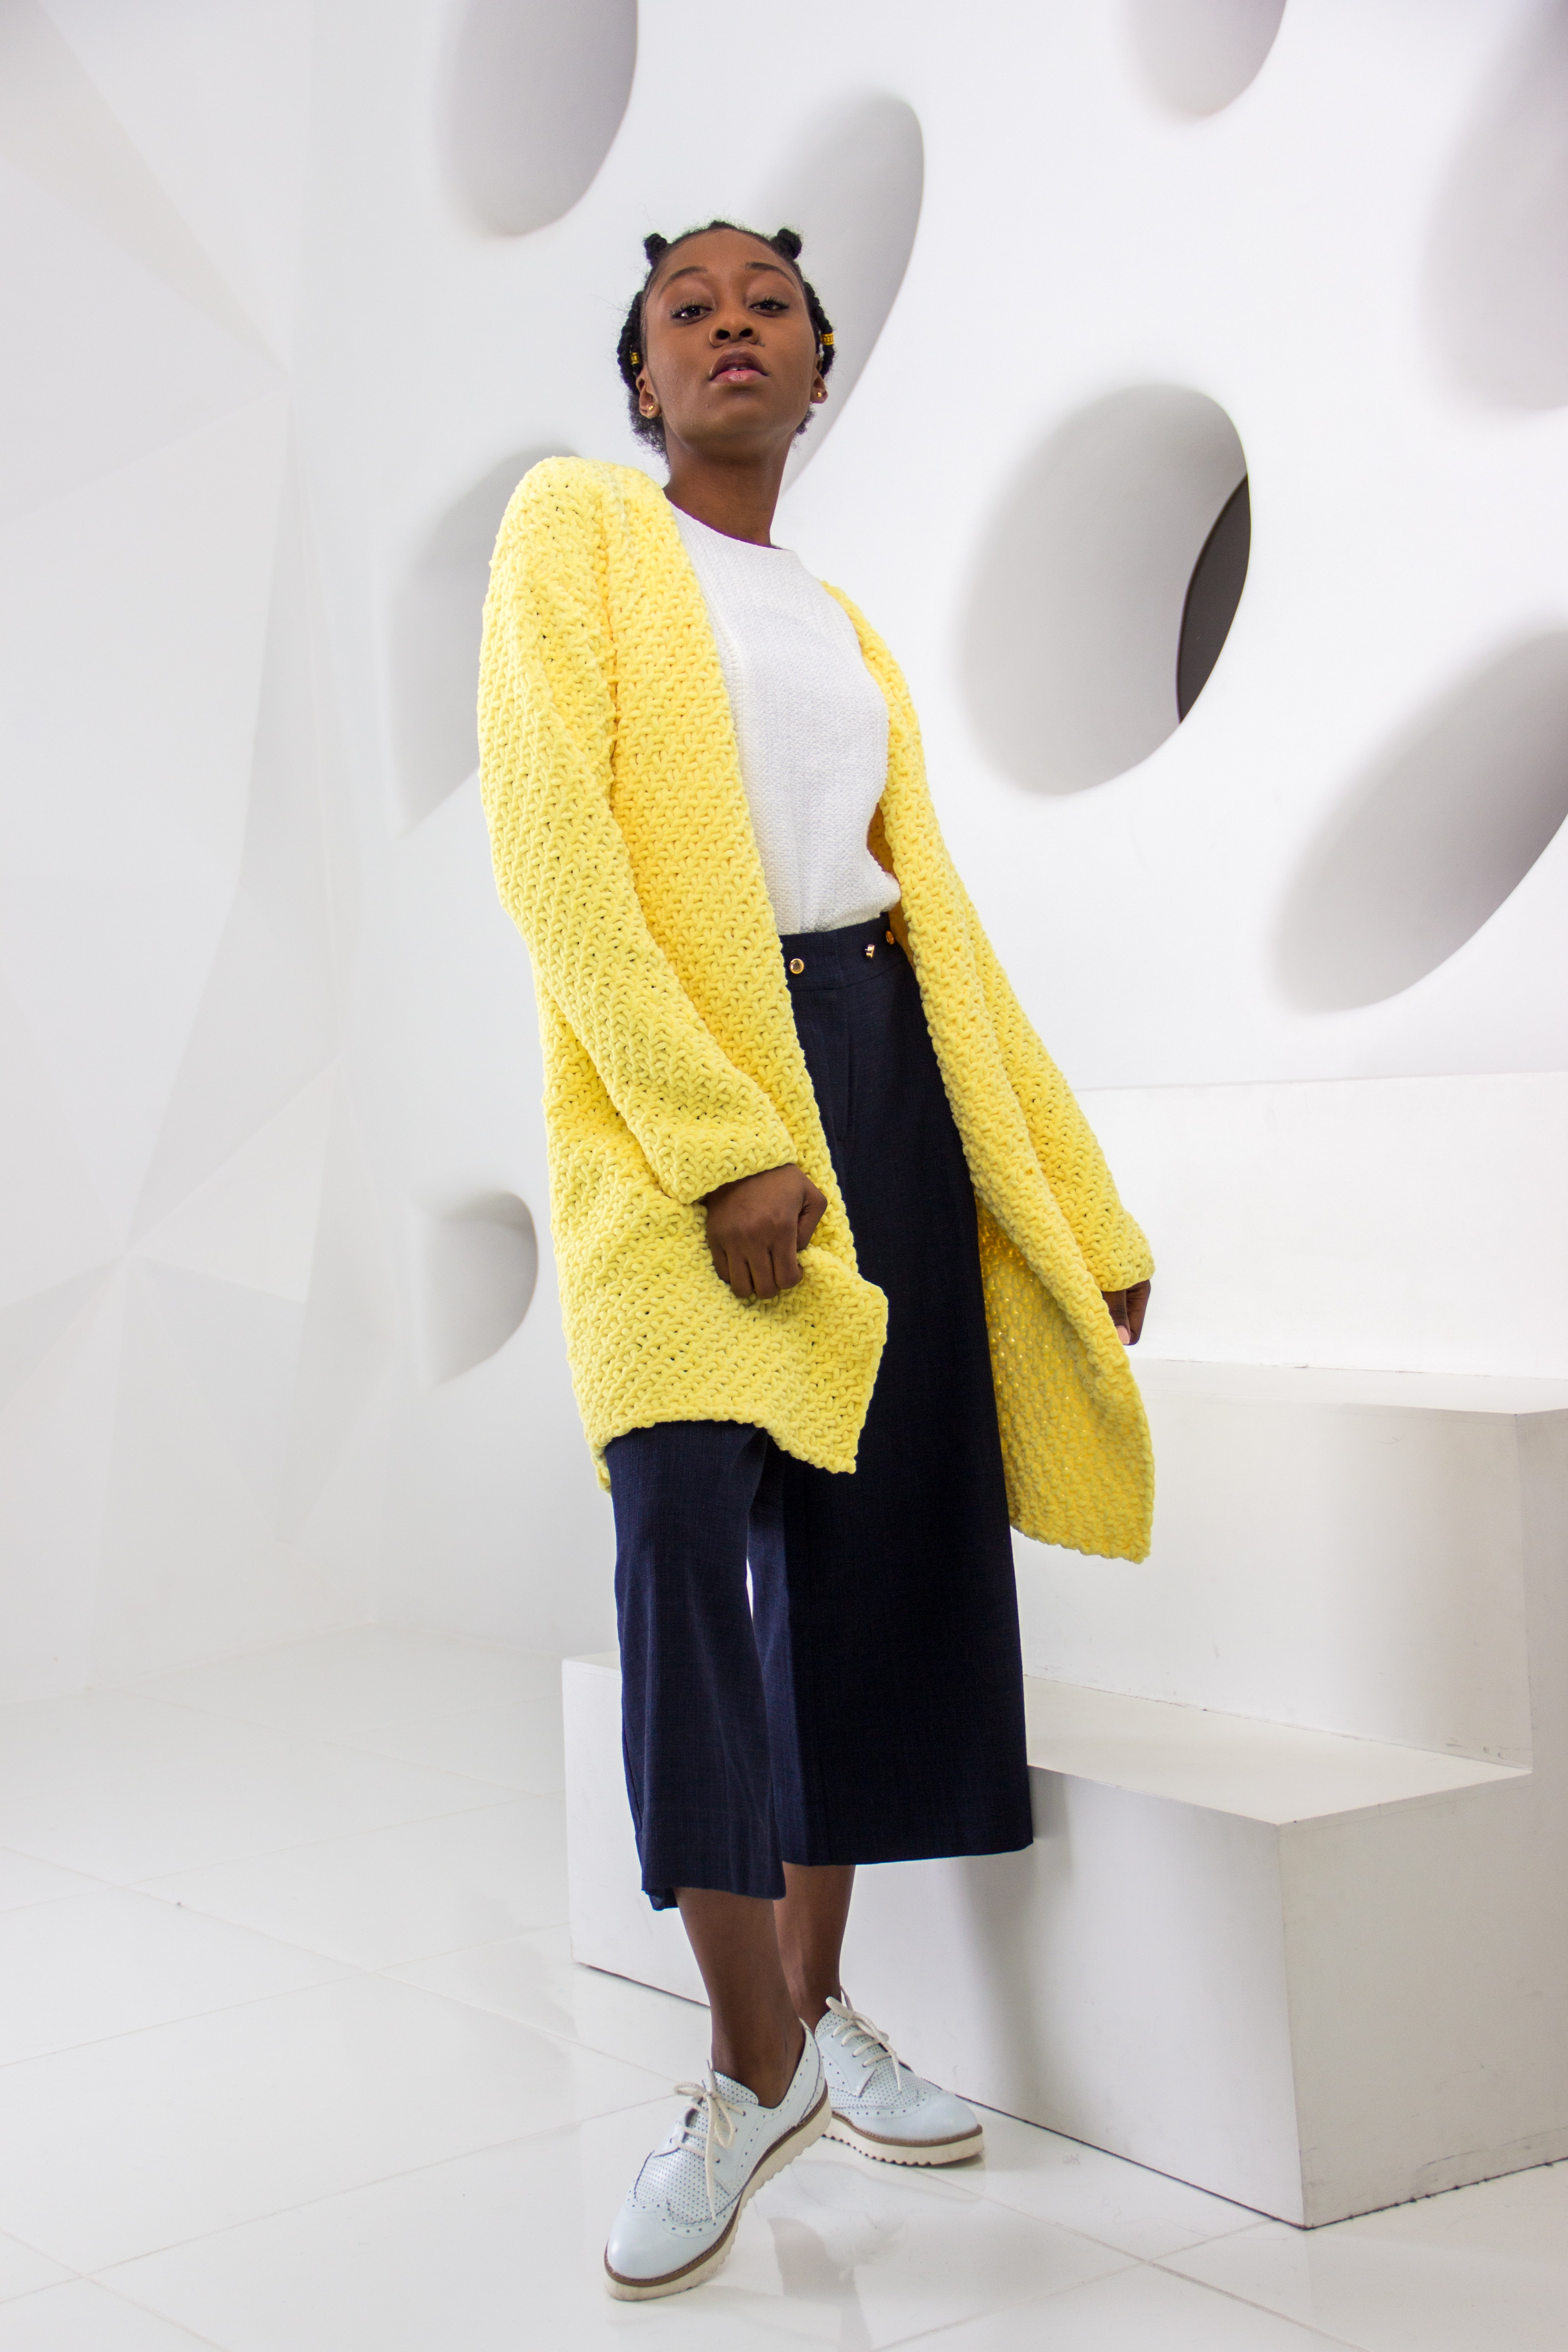 What is fashionable to wear knitted cardigans